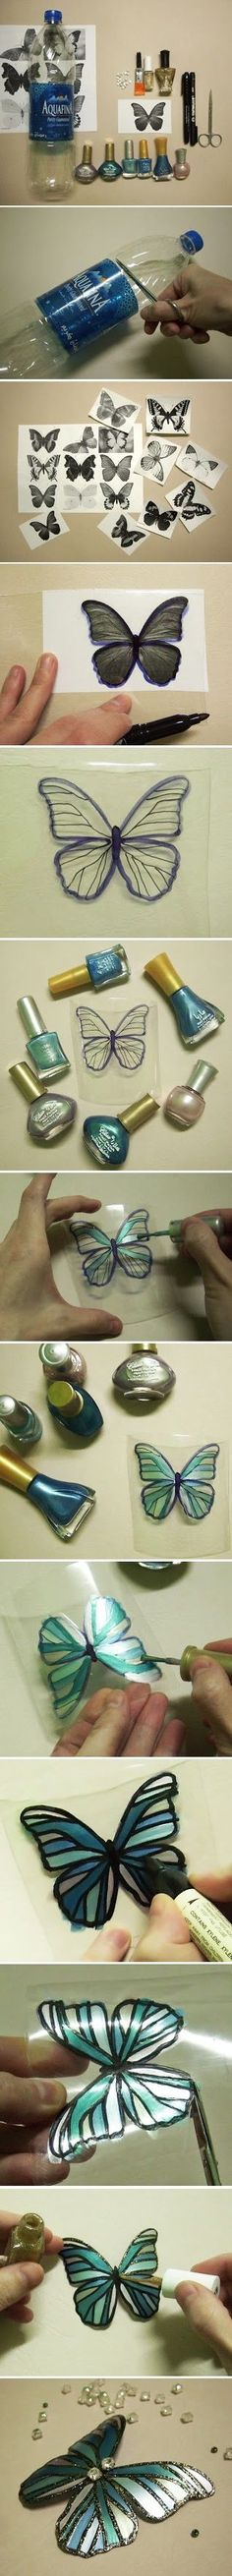 DIY Butterflies Made From Plastic Bottles simple craft for everyone.